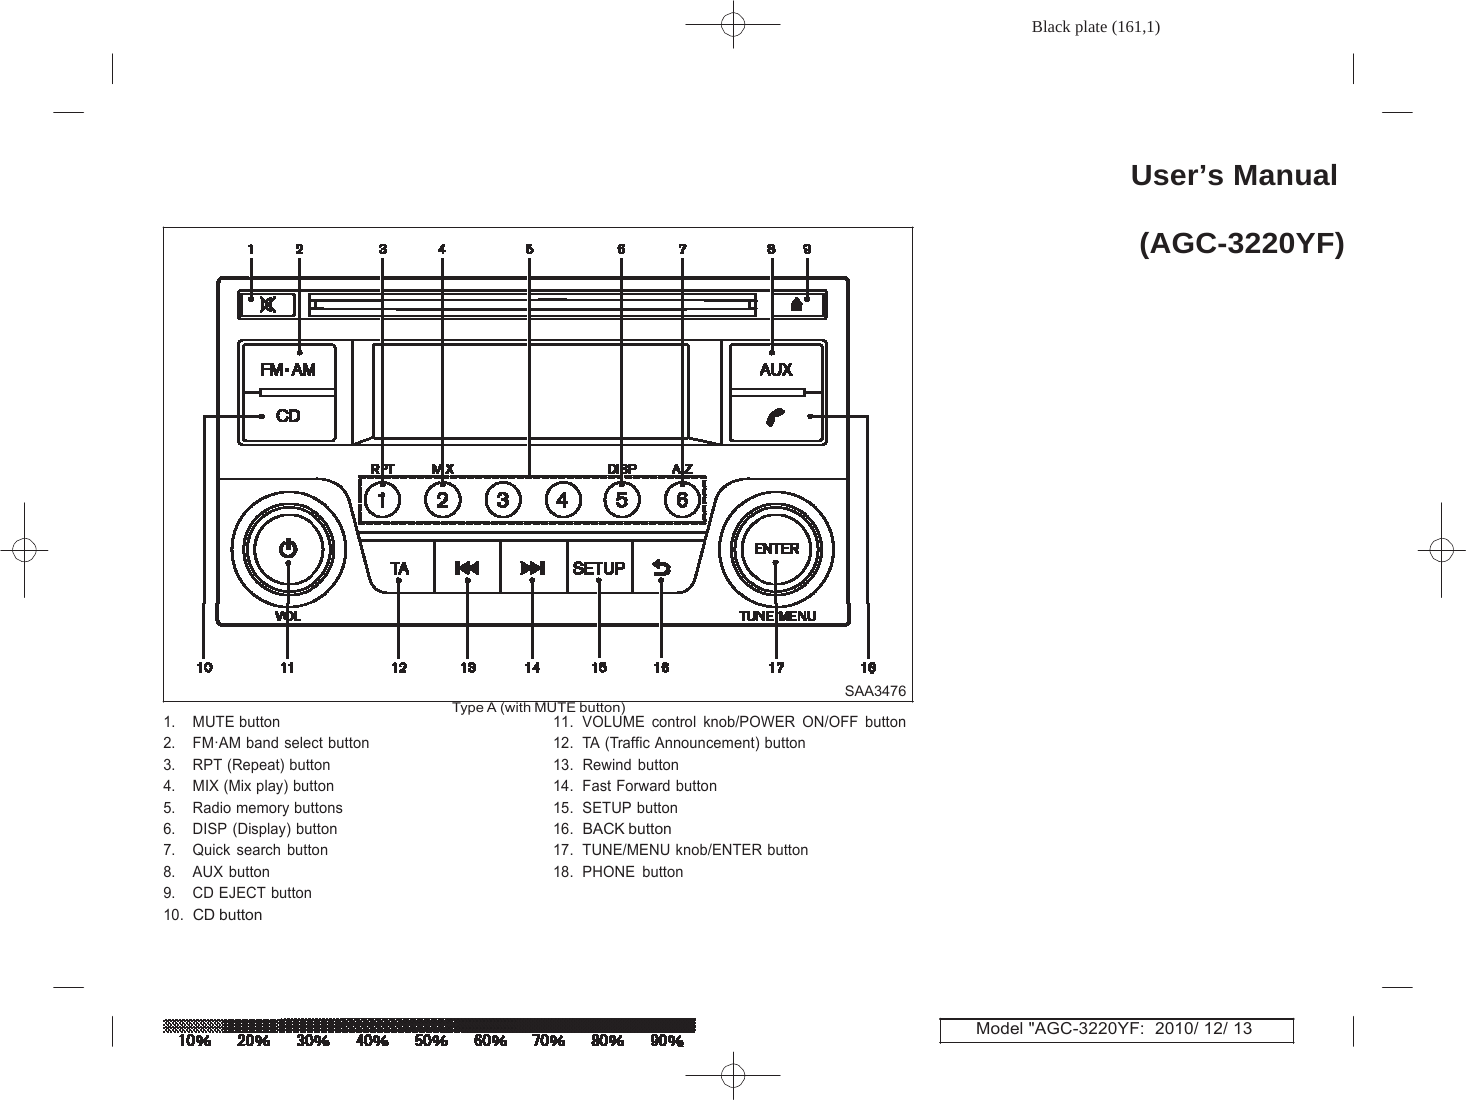 Humax AGC-3220YF CAR AUDIO User Manual AGC 3220YF REVx